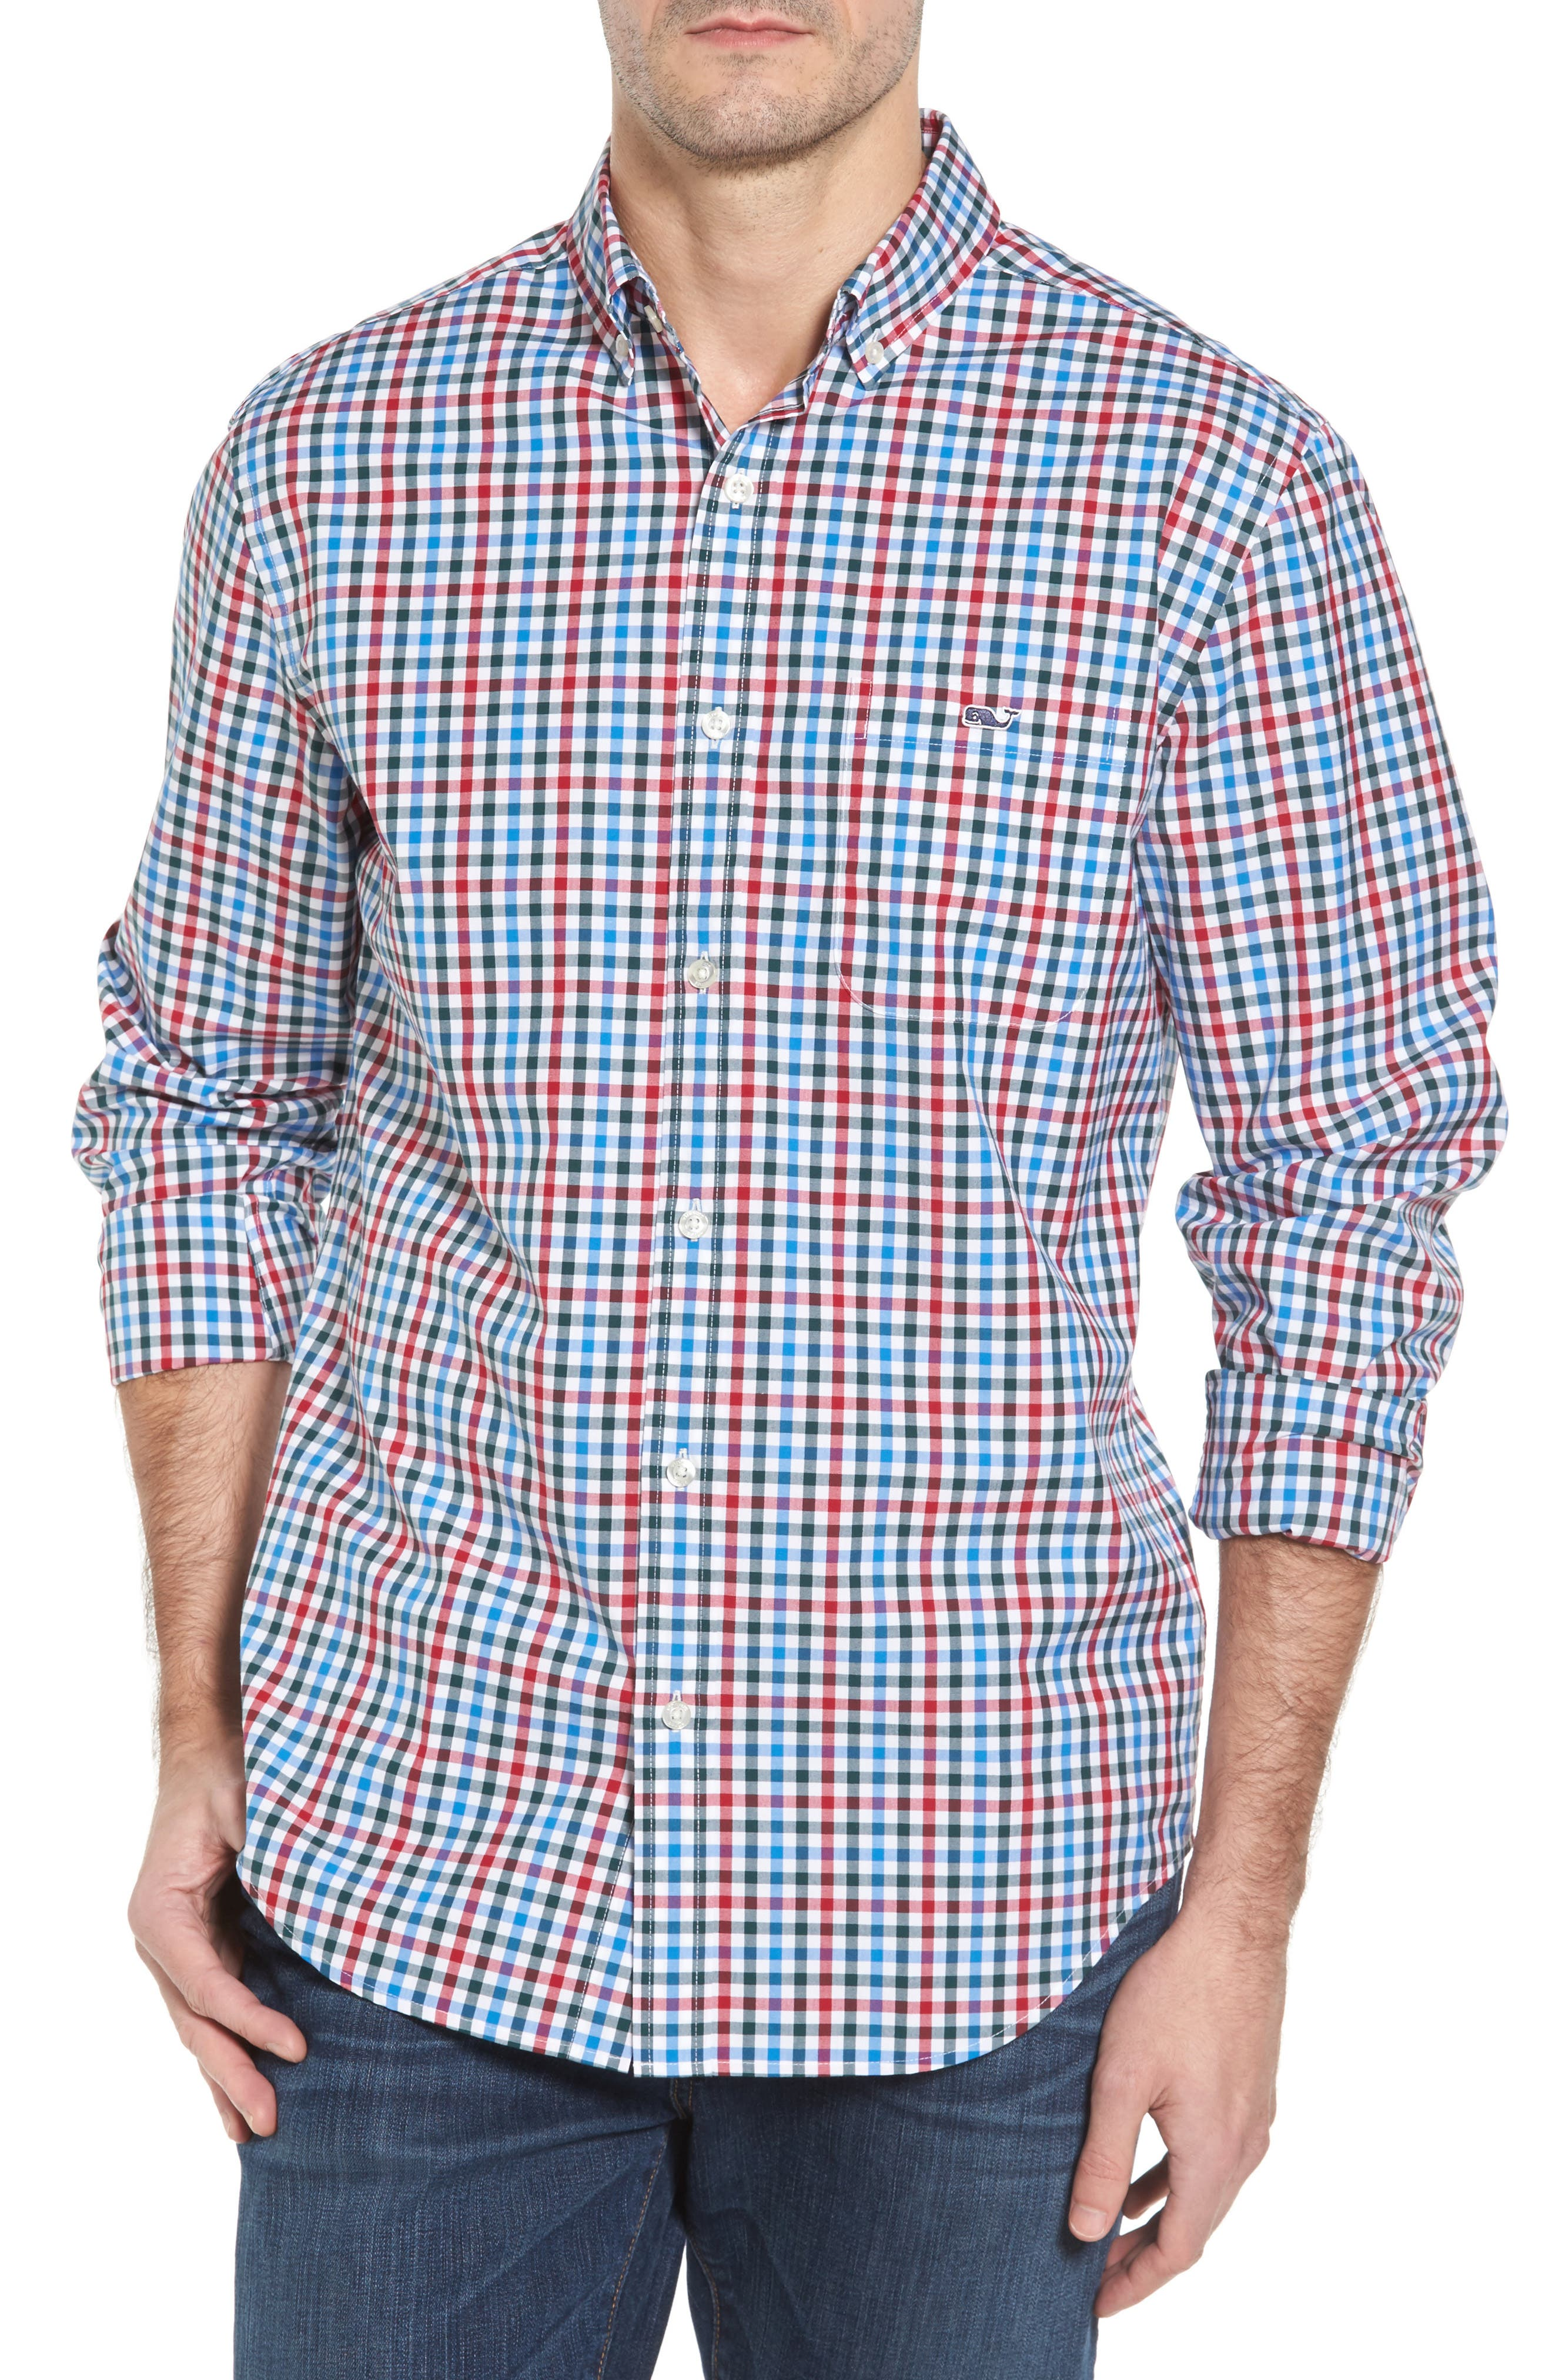 Higgins Beach Classic Fit Gingham Sport Shirt,                         Main,                         color, Pomegranate